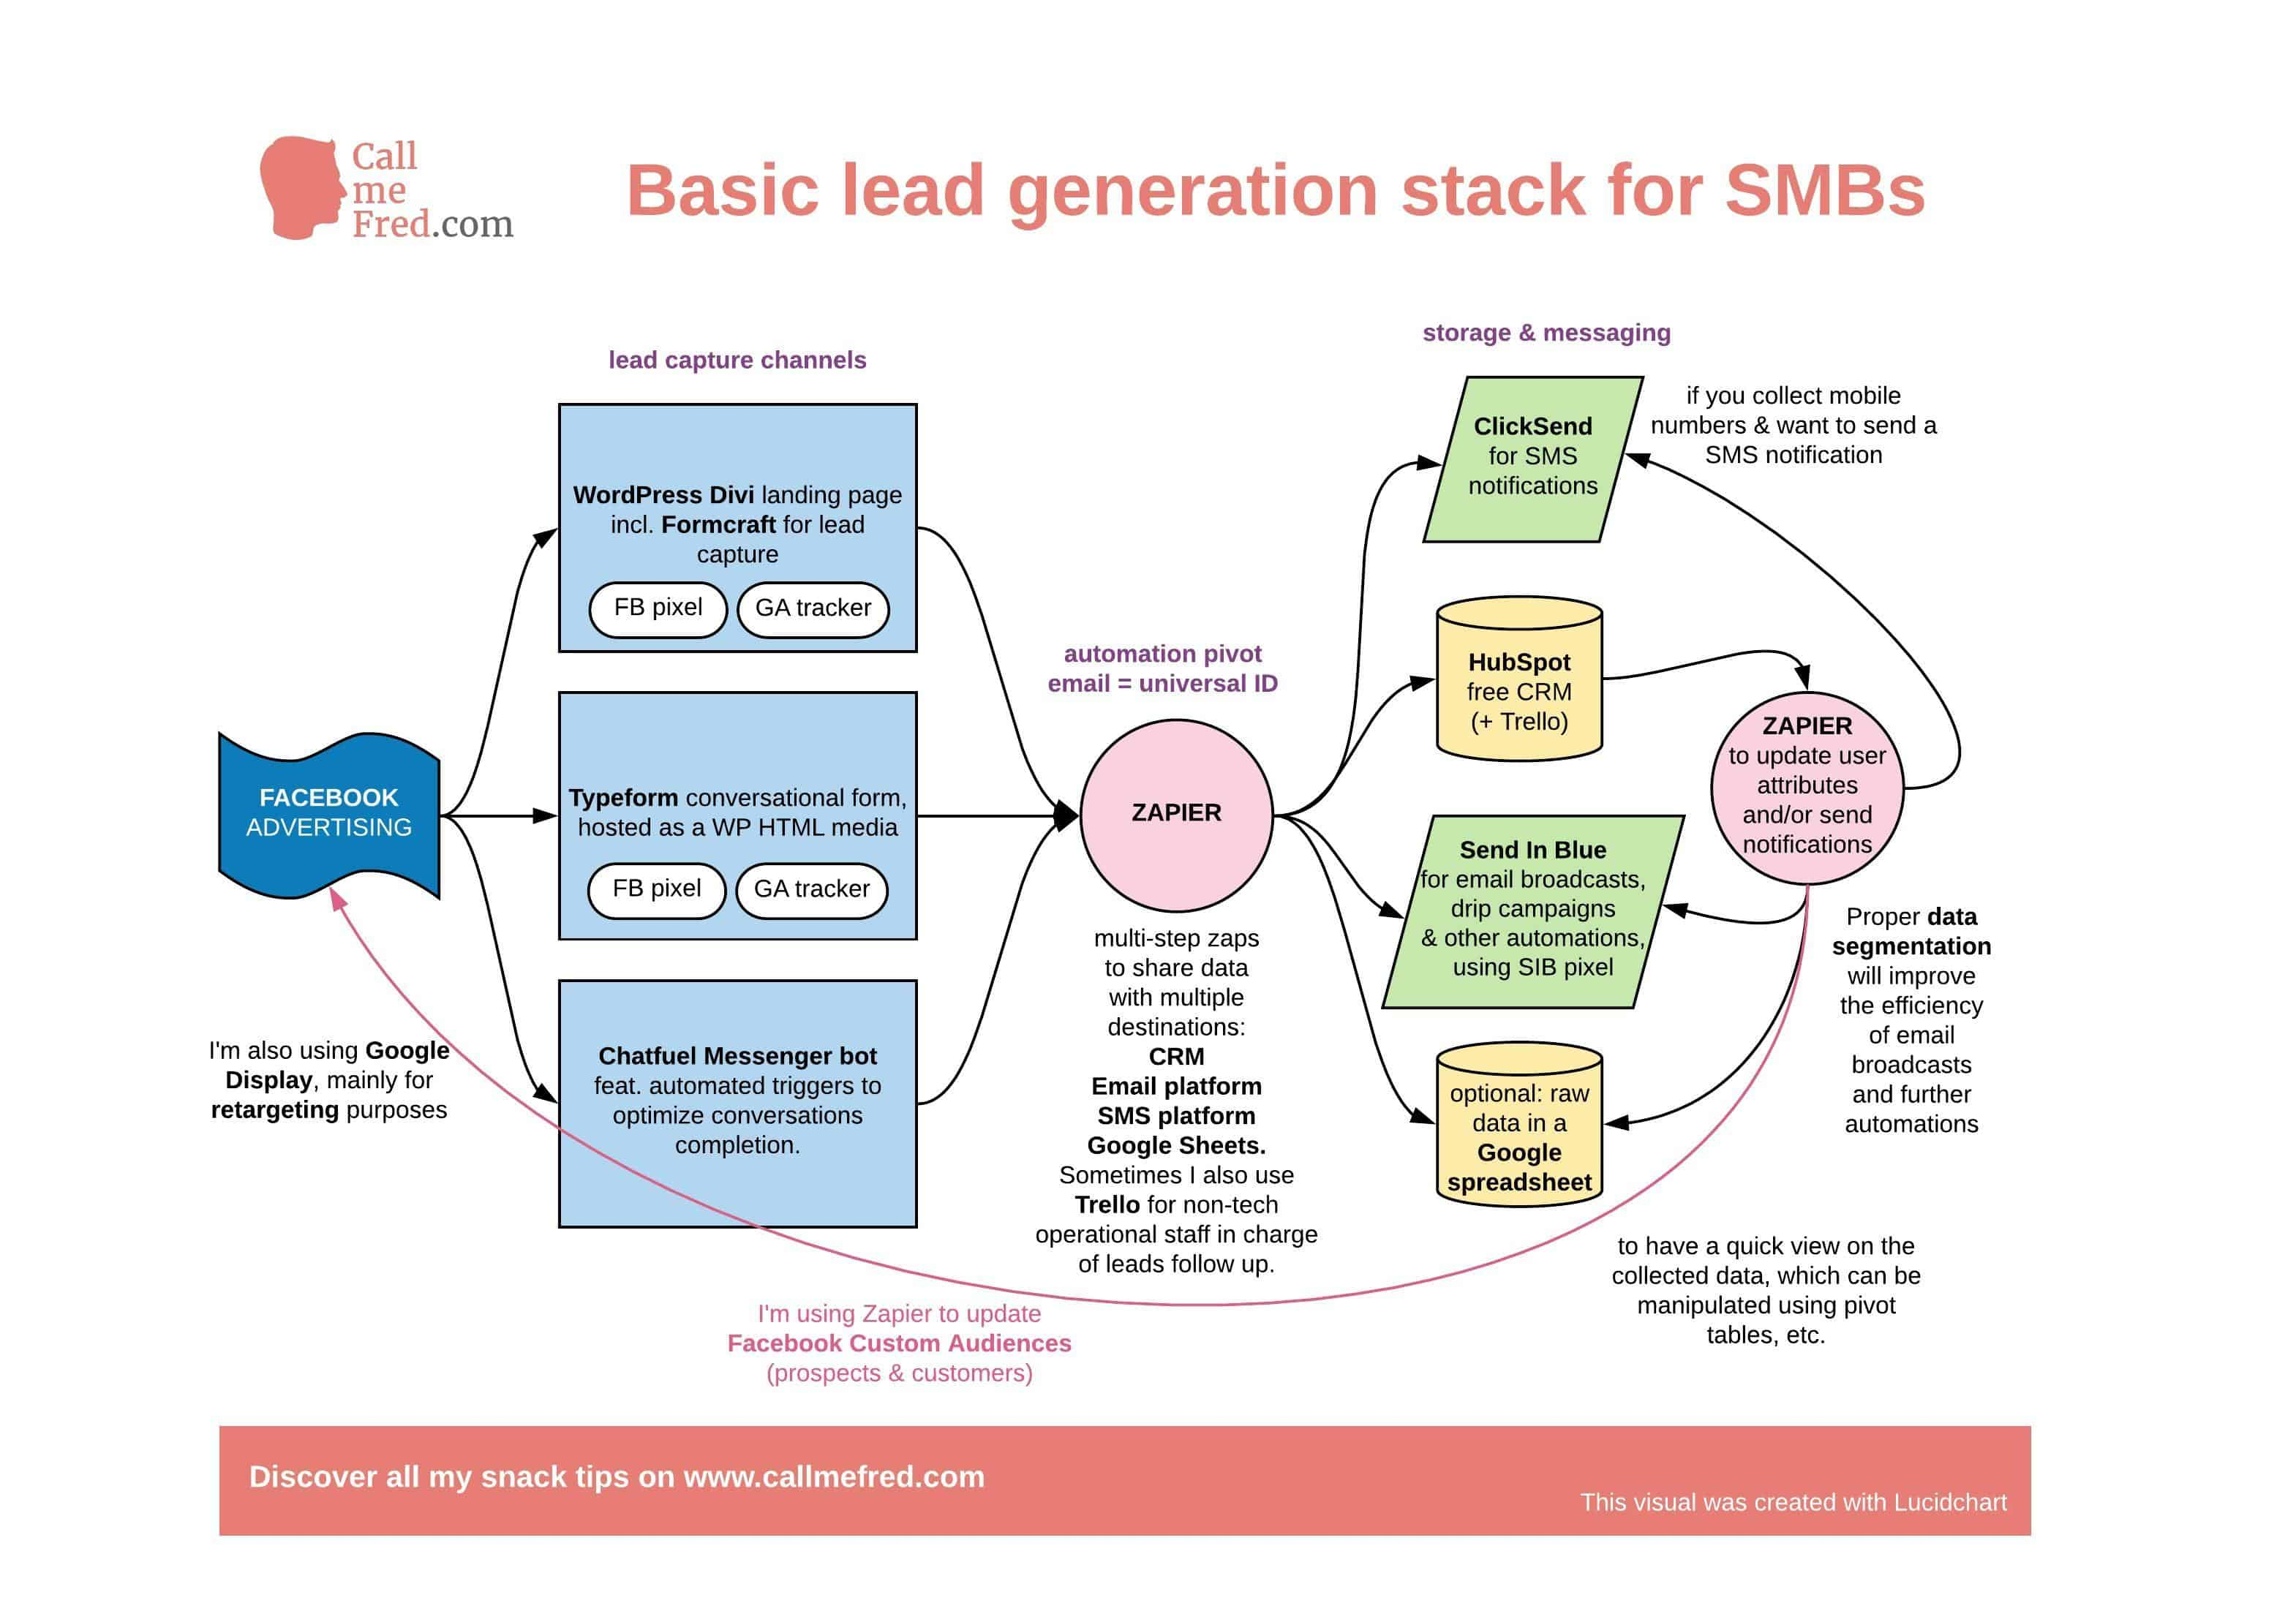 My basic lead generation stack for SMBs - Call Me Fred